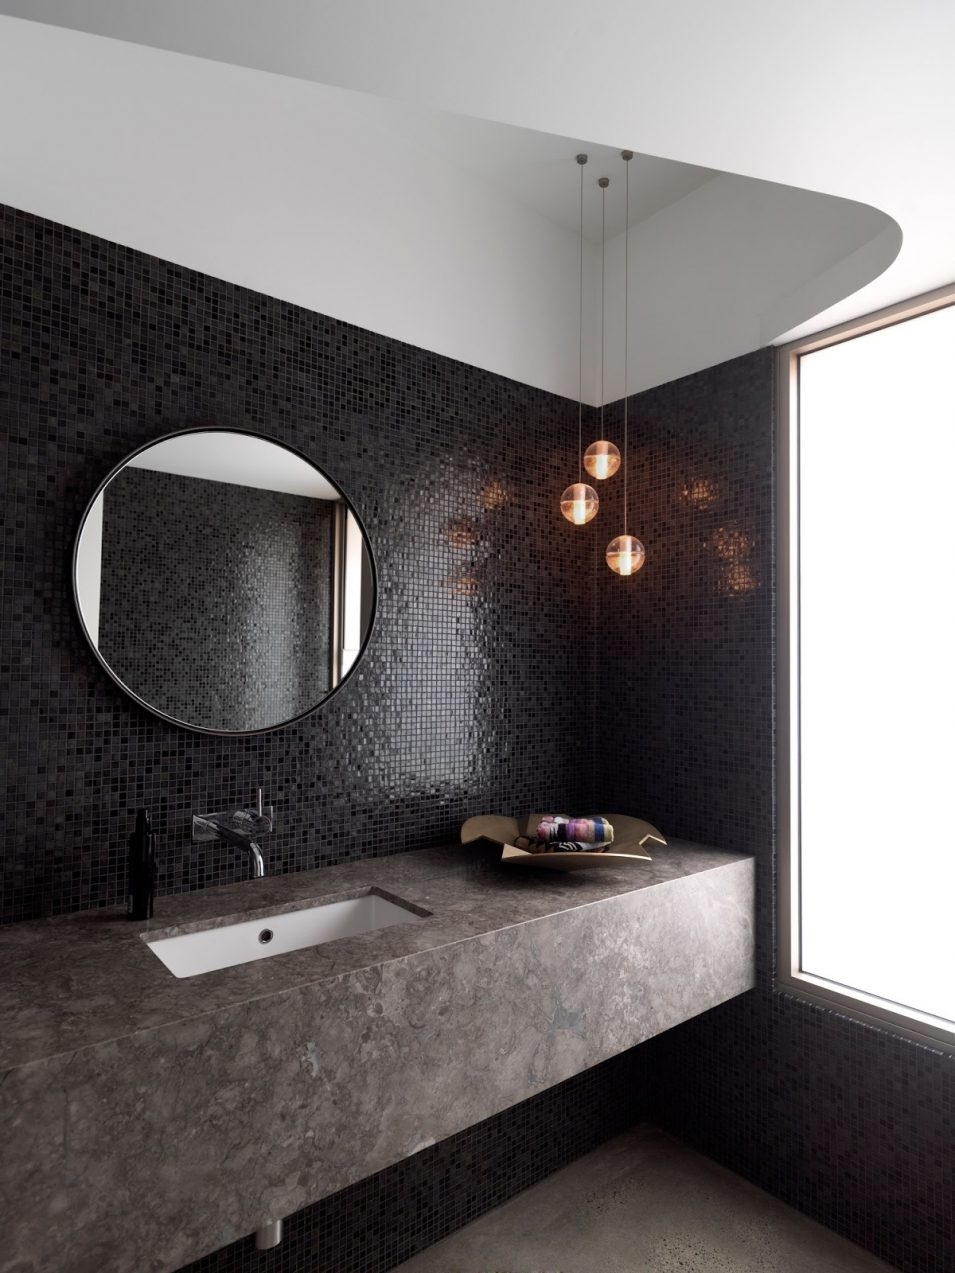 The Best Recommendation Of Round Bathroom Mirrors Nytexas In Large Black Round Mirror (Image 15 of 15)